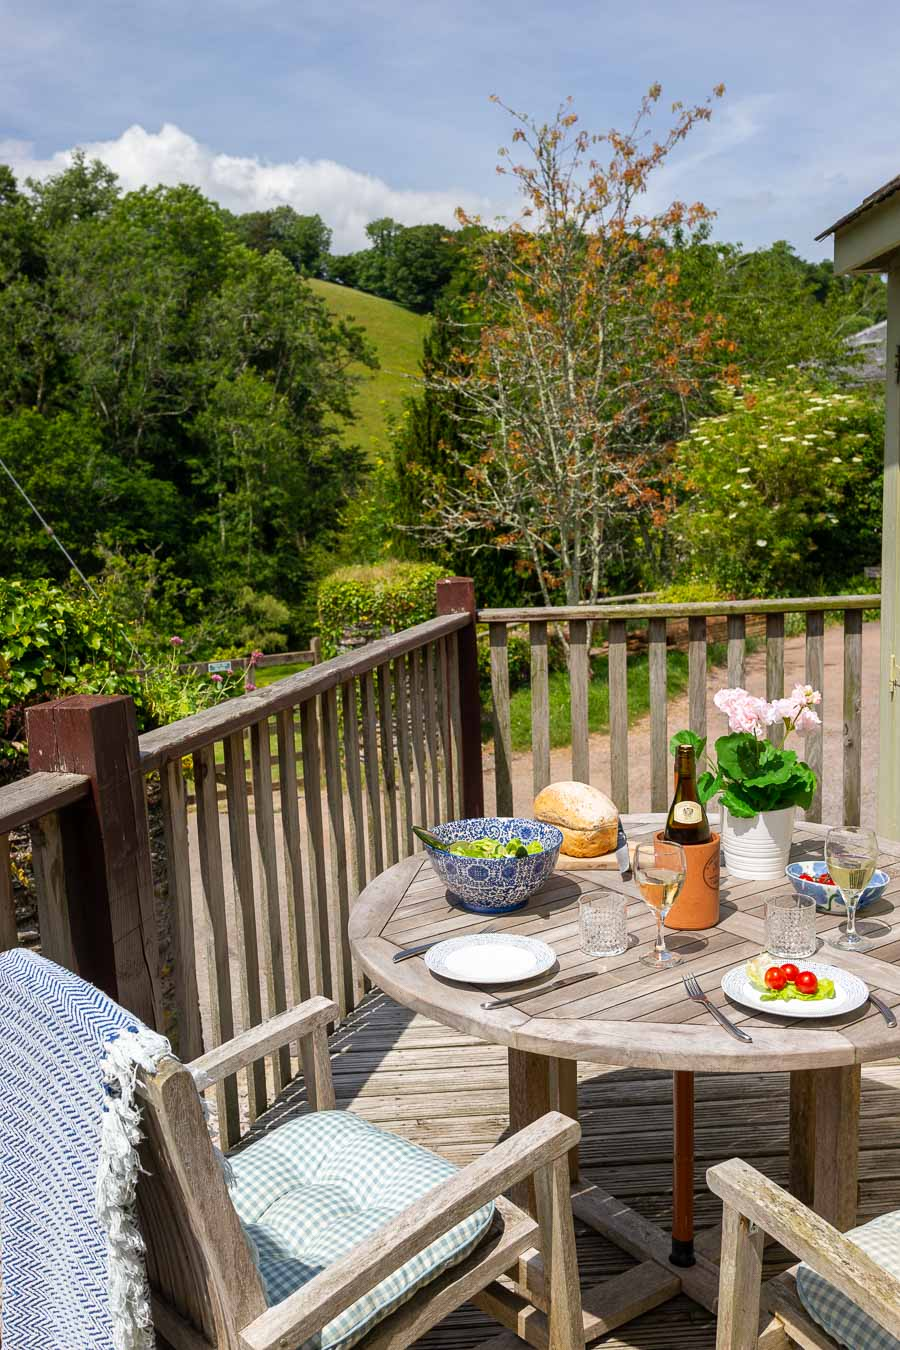 The private deck at Dairy cottage, for sunny lunches or romantic evening meals overlooking the duck pond and tree lined valley of Flear Farm.